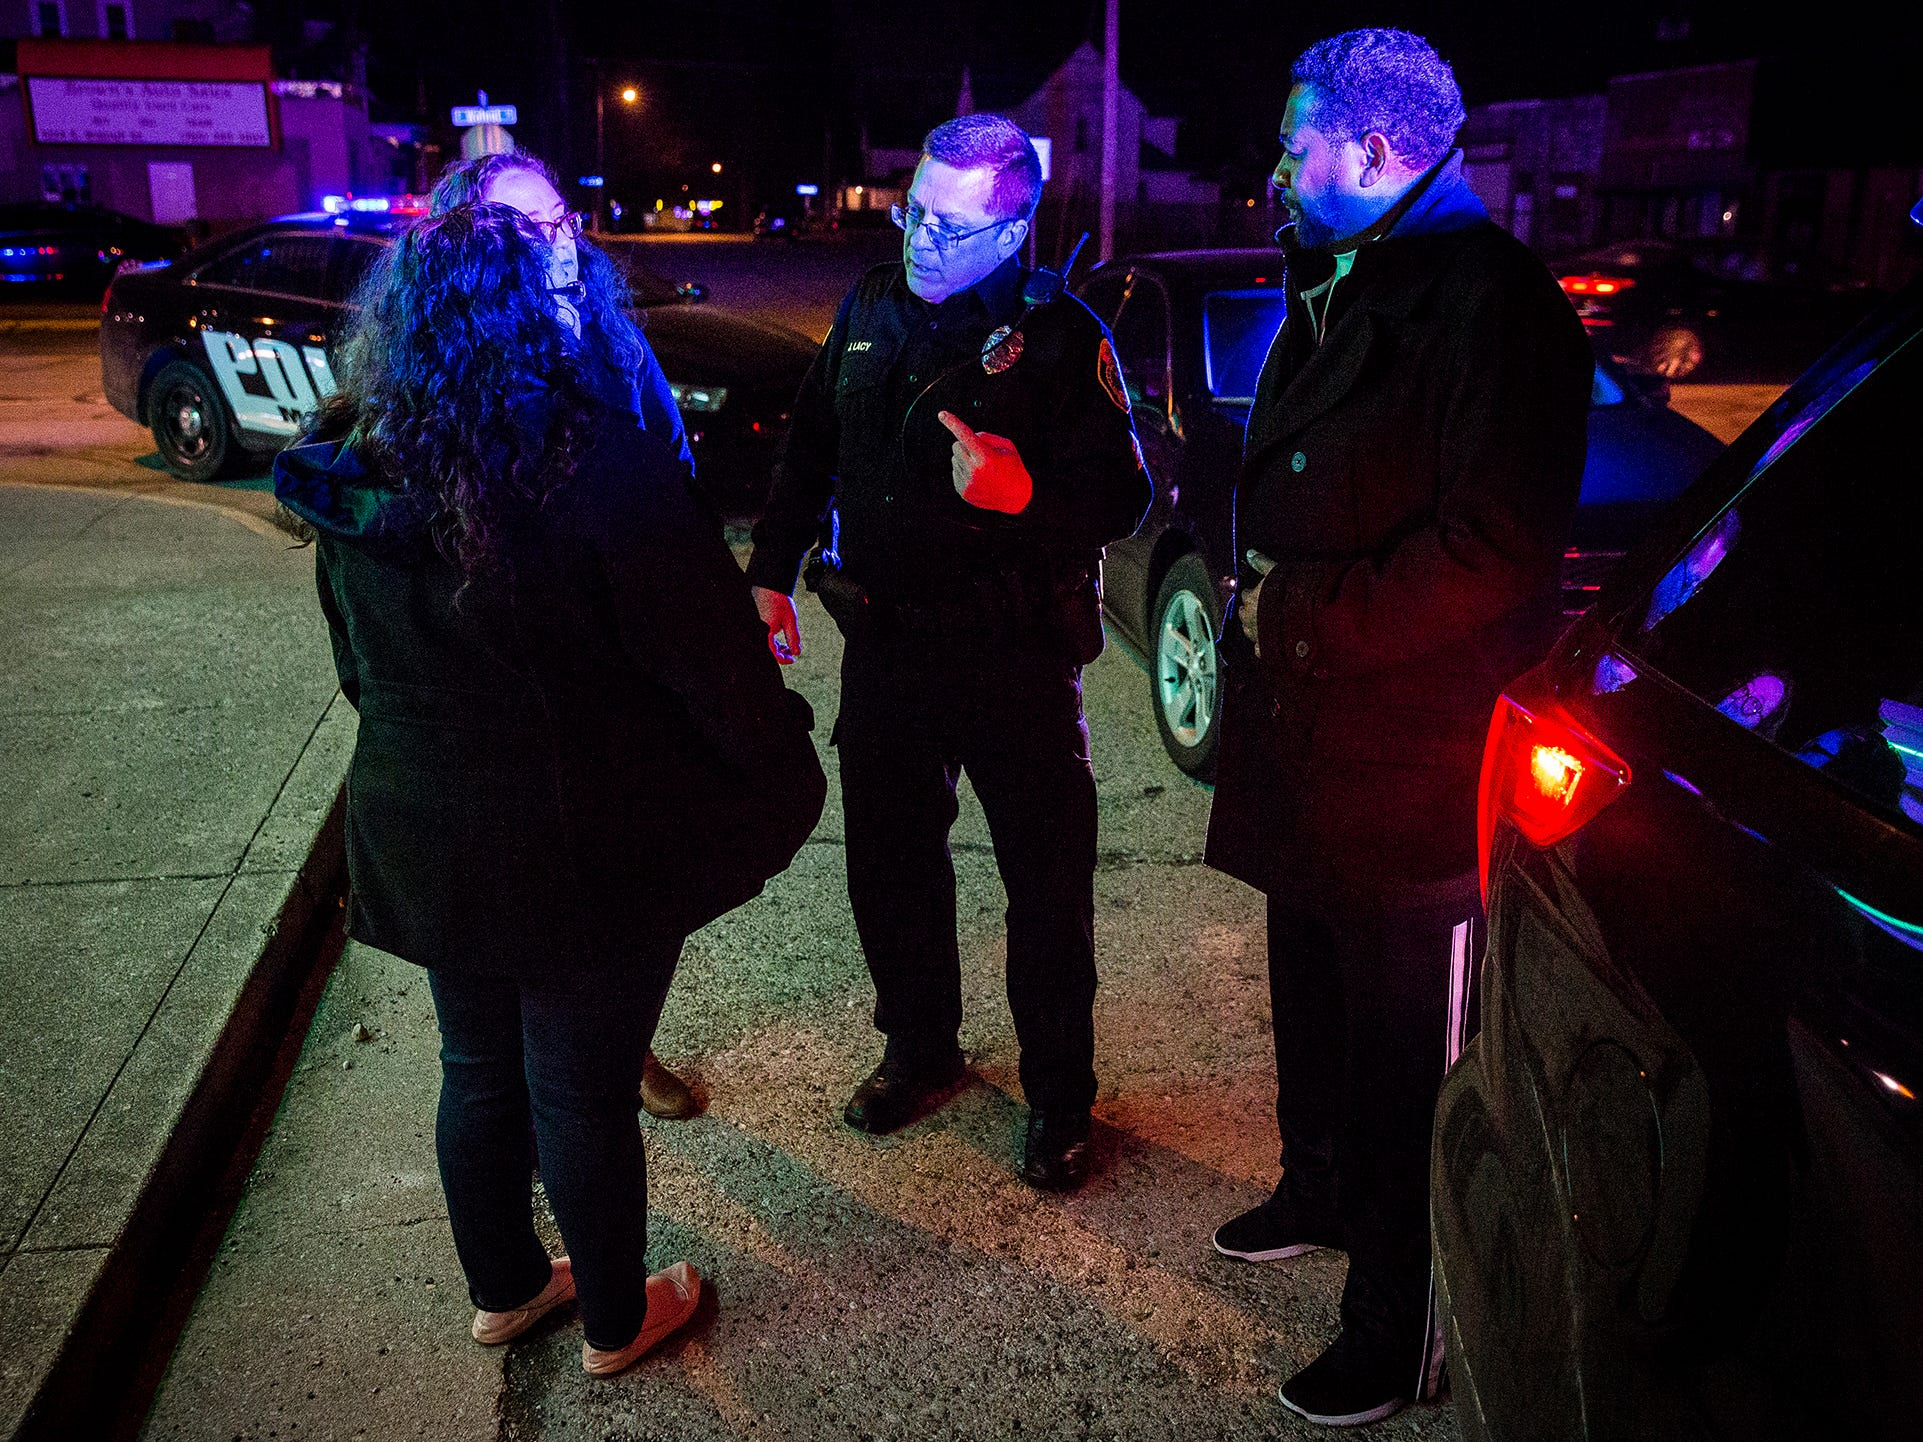 Training director officer Jeff Lacy speaks with graduates of the Muncie Citizen Police Academy during a traffic stop. The academy is part of the city police department's outreach effort and was designed to show citizens what it's like to work as a police officer.